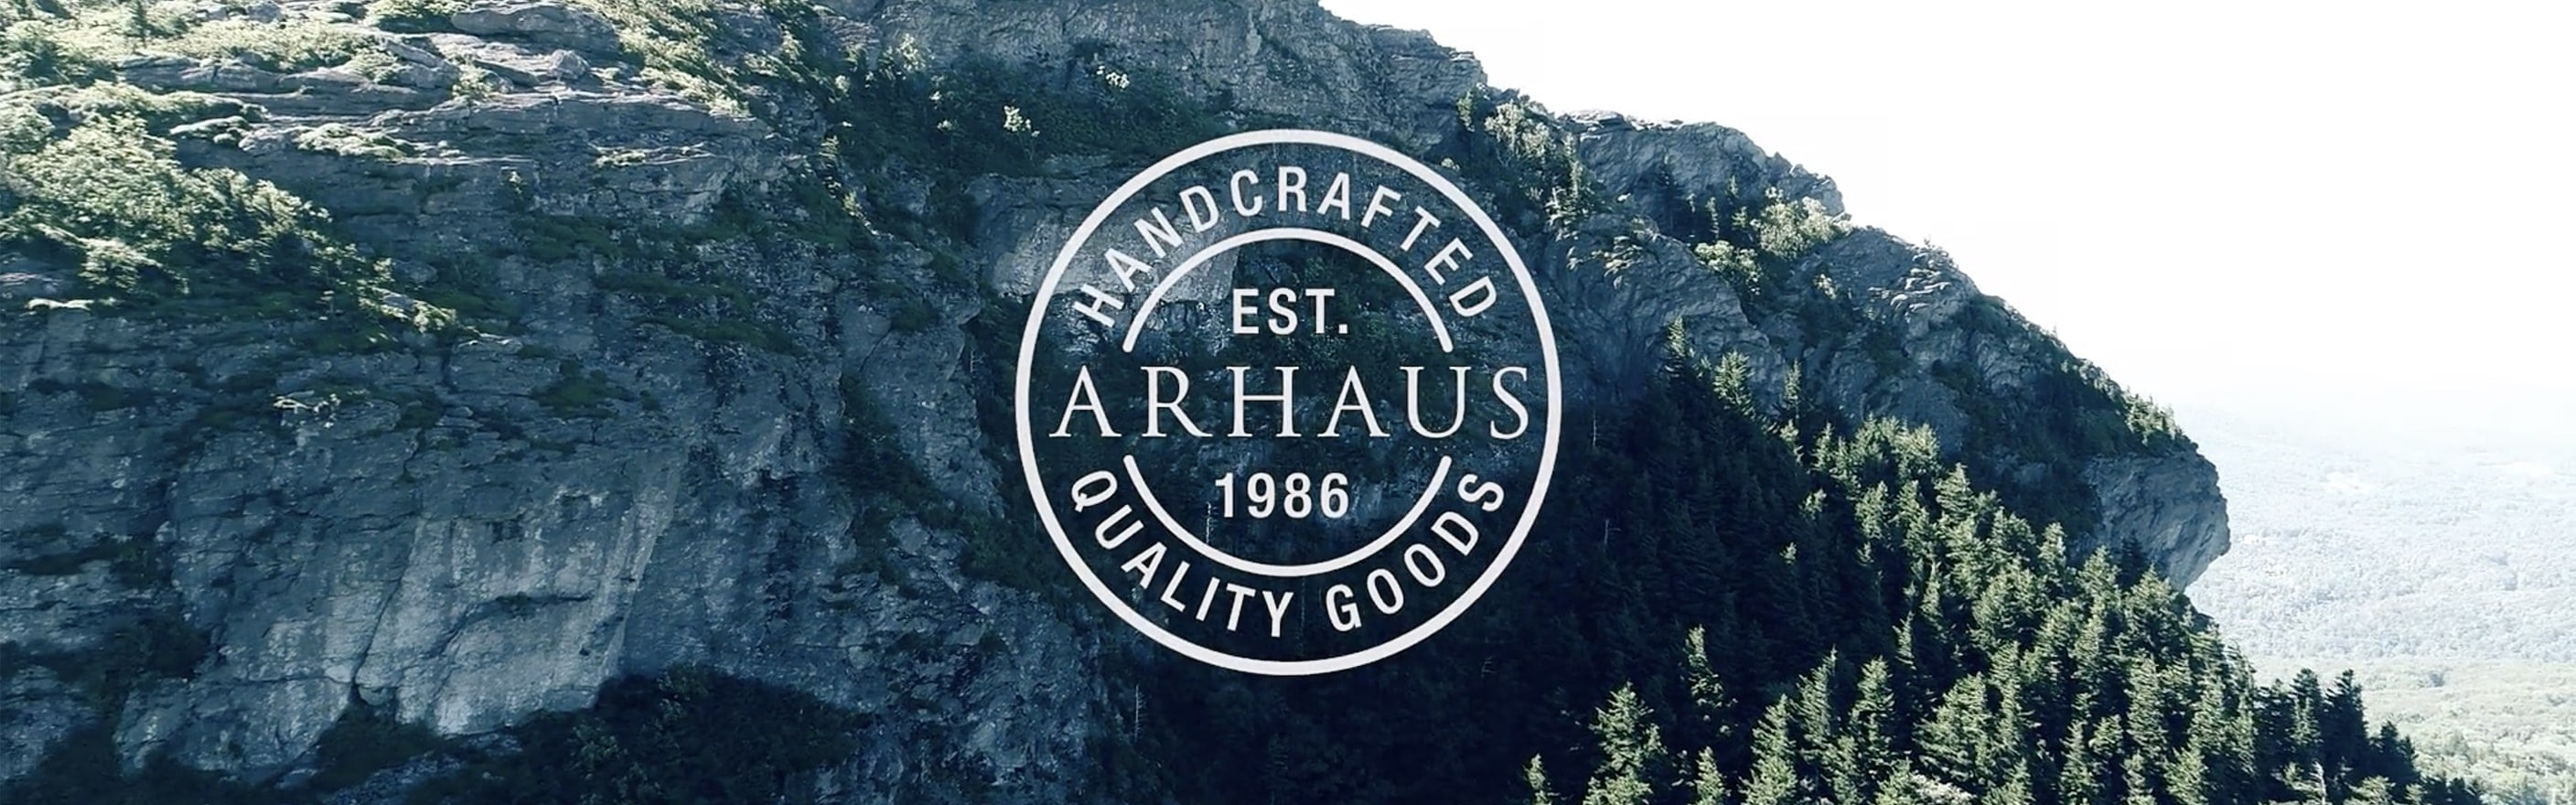 Shop Arhaus Handcrafted Quality Goods, Established in 1986